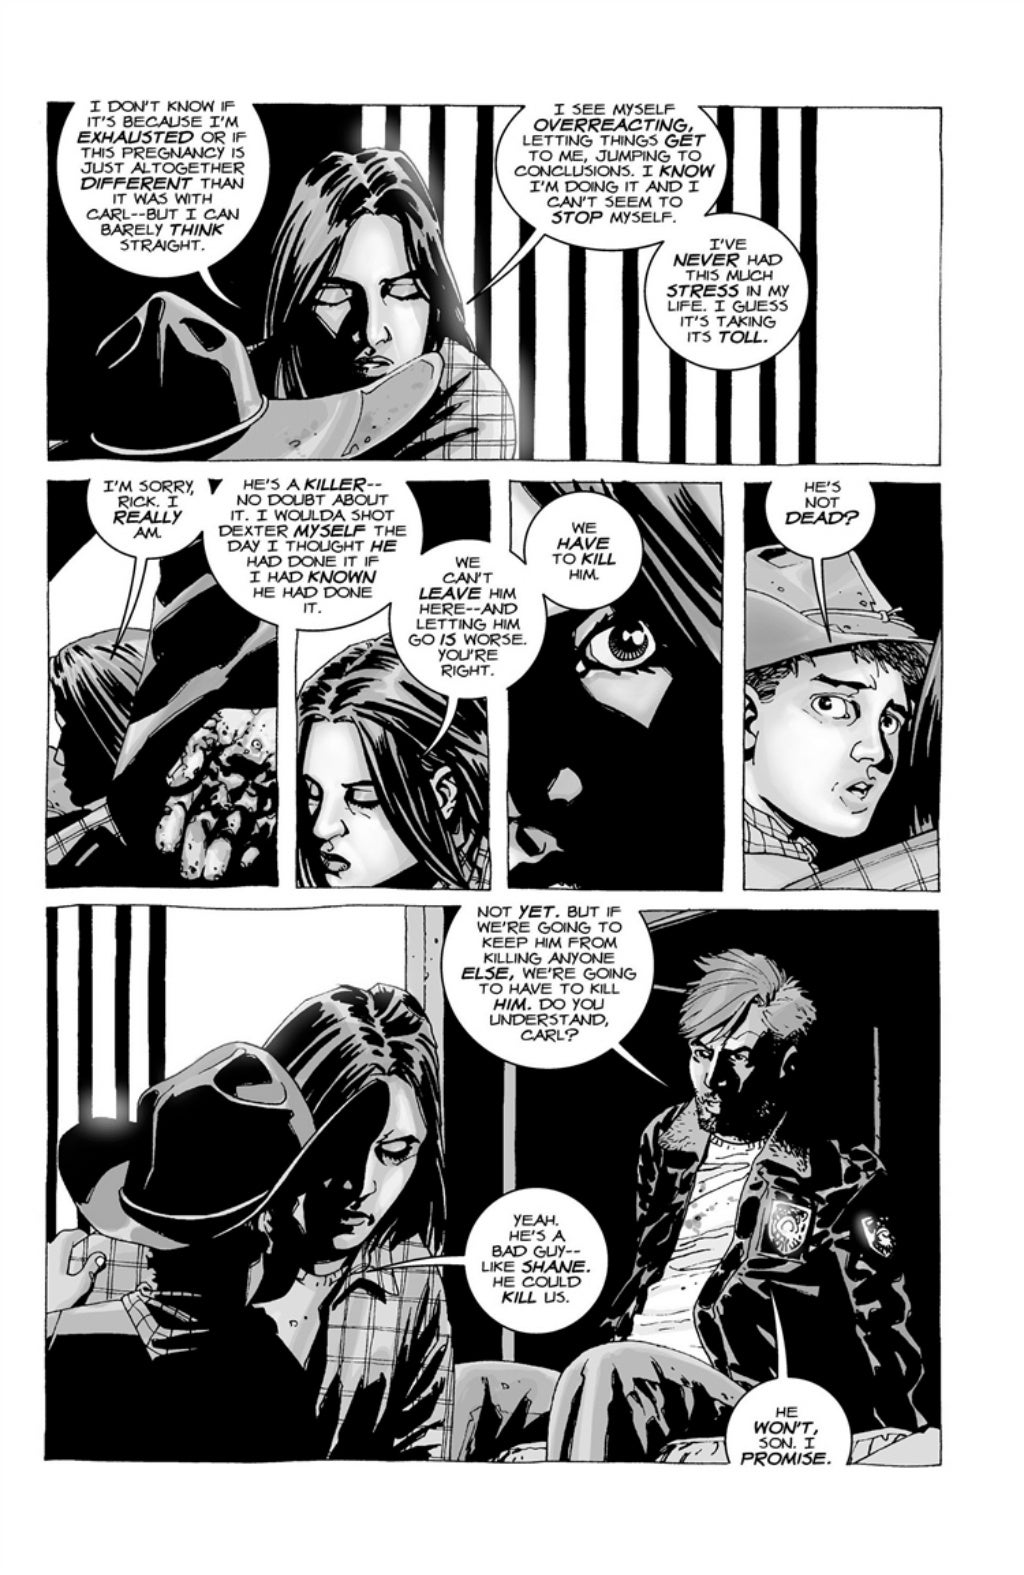 The Walking Dead volume 3 page 117